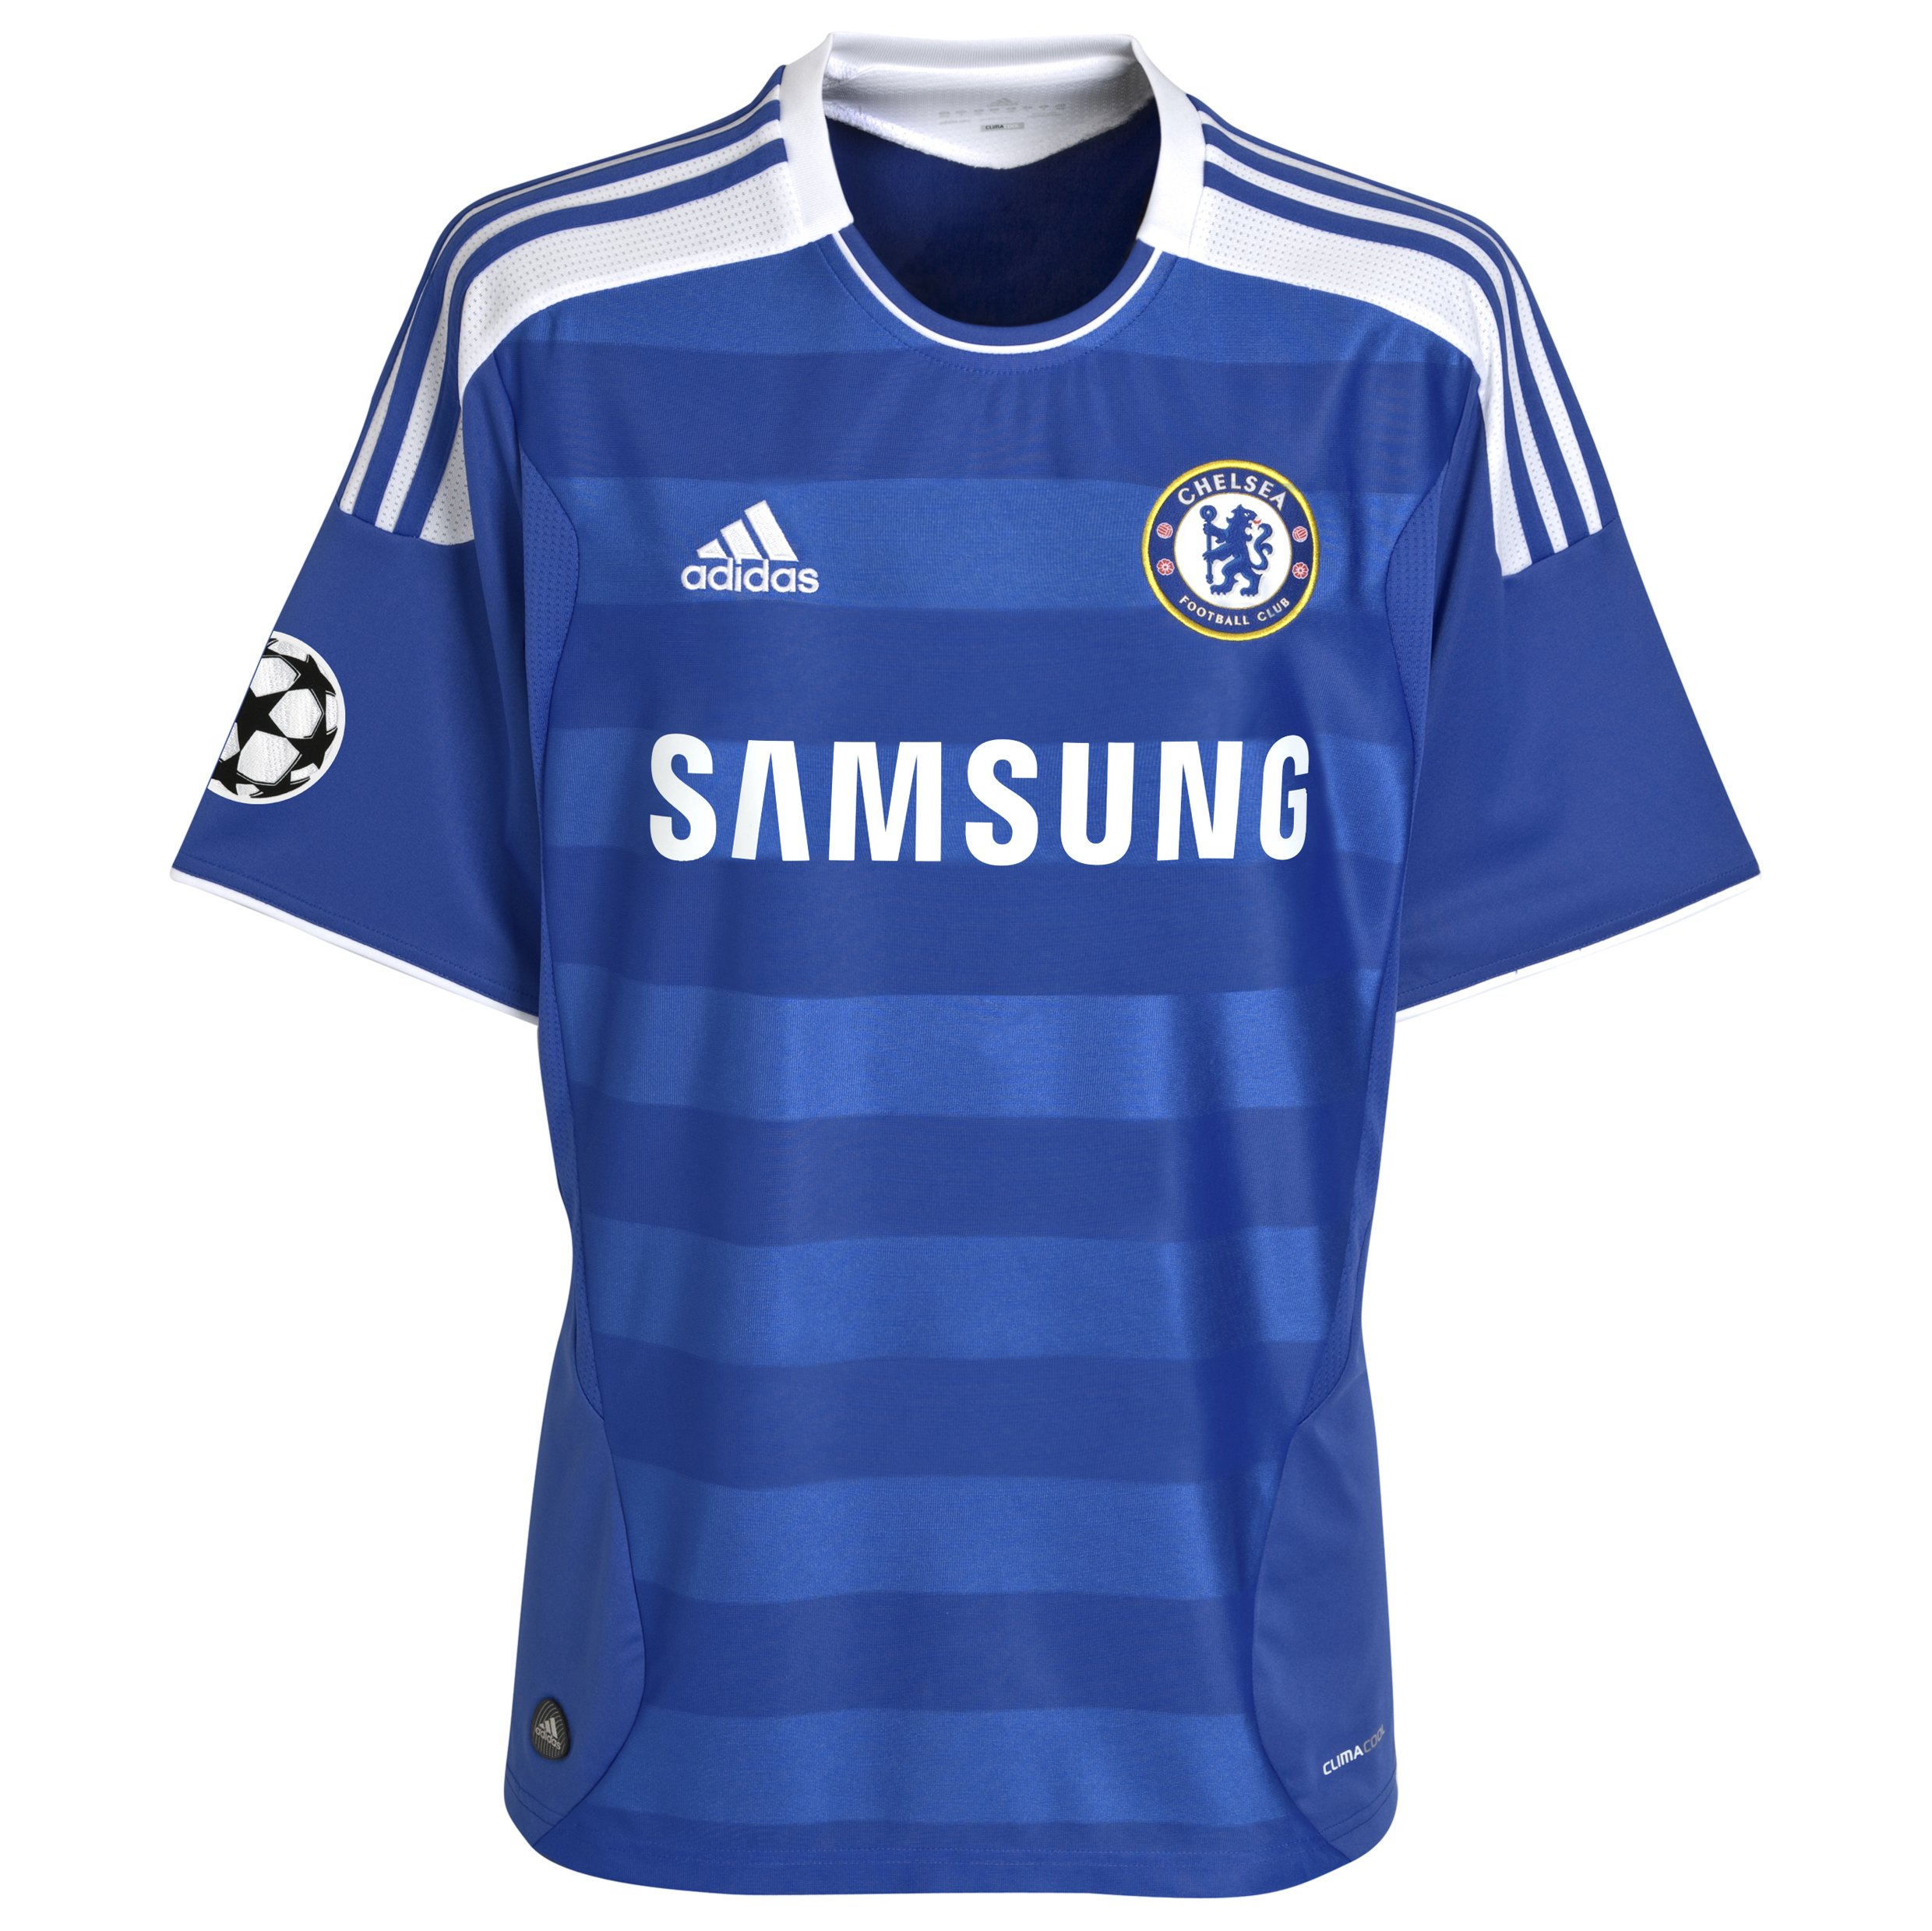 Chelsea UEFA Champions League Home Shirt 2011/12 - Kids